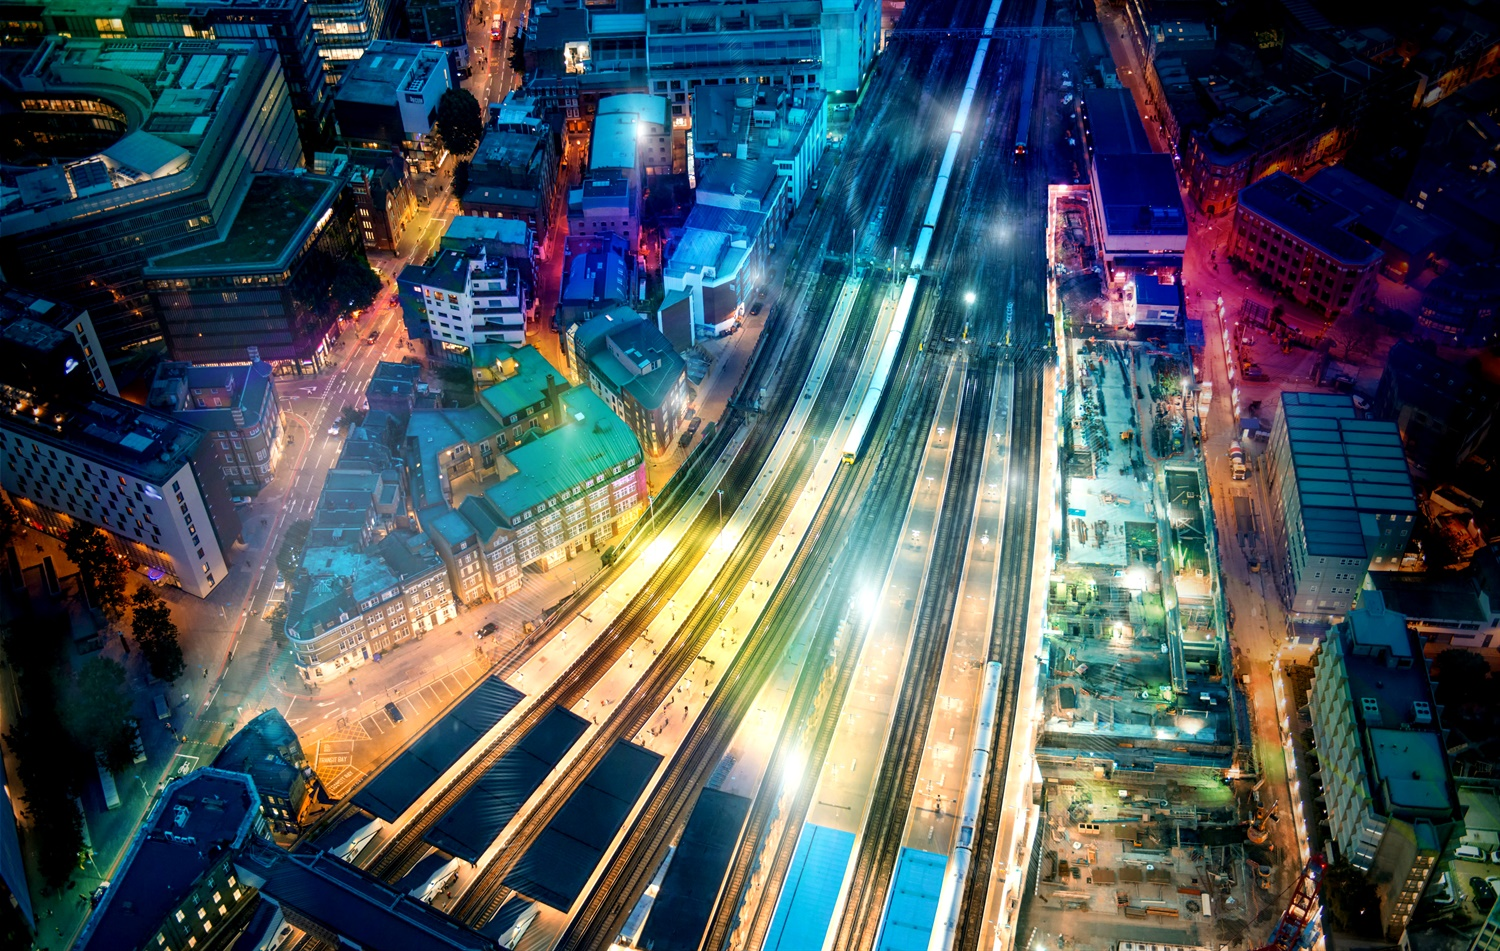 Digital Railway: From potential to kinetic